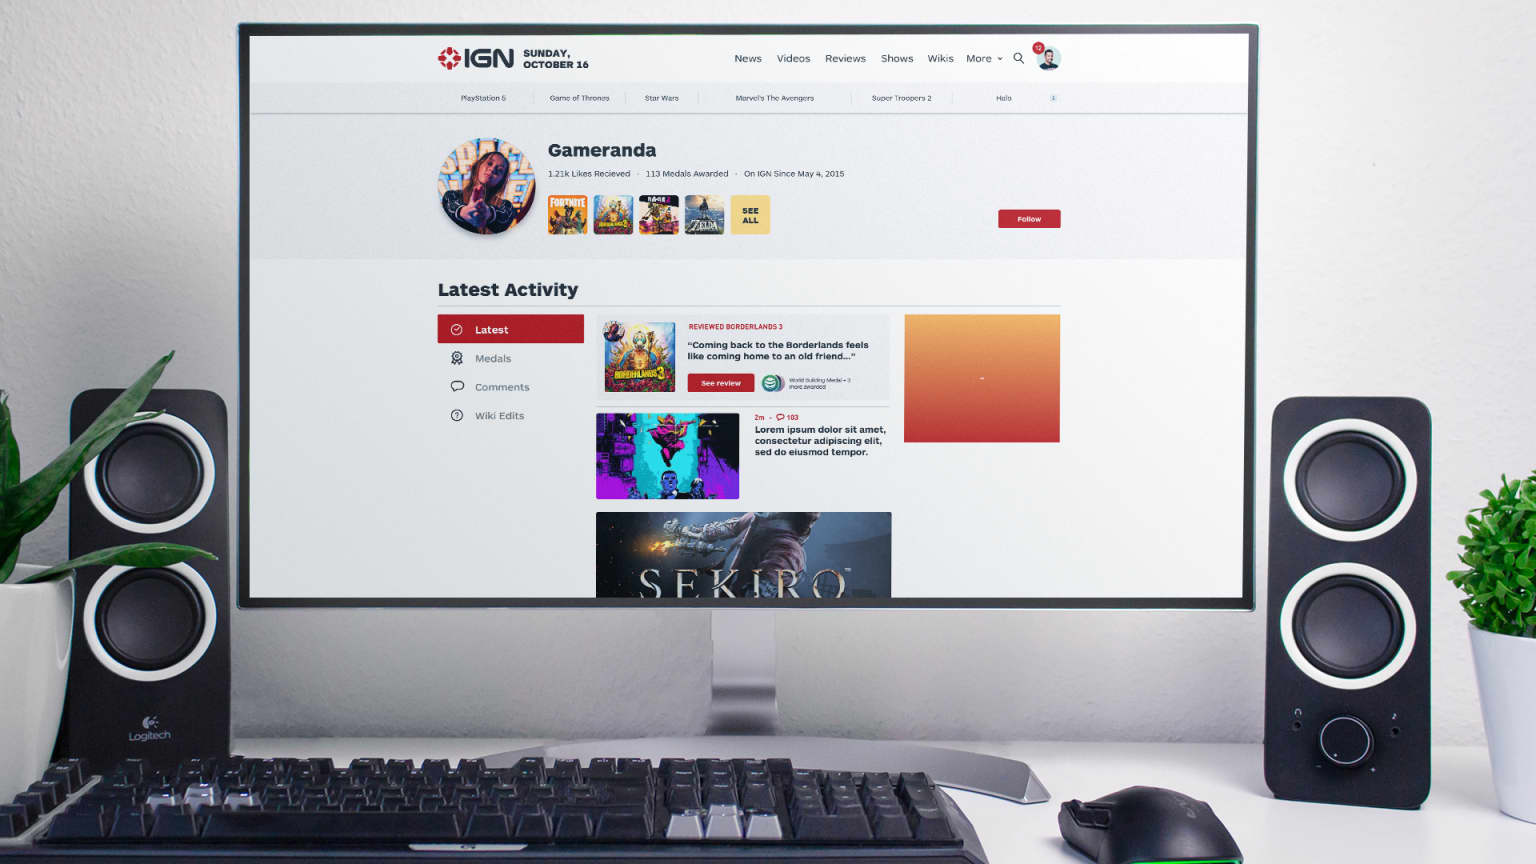 IGN User profiles and entertainment properties